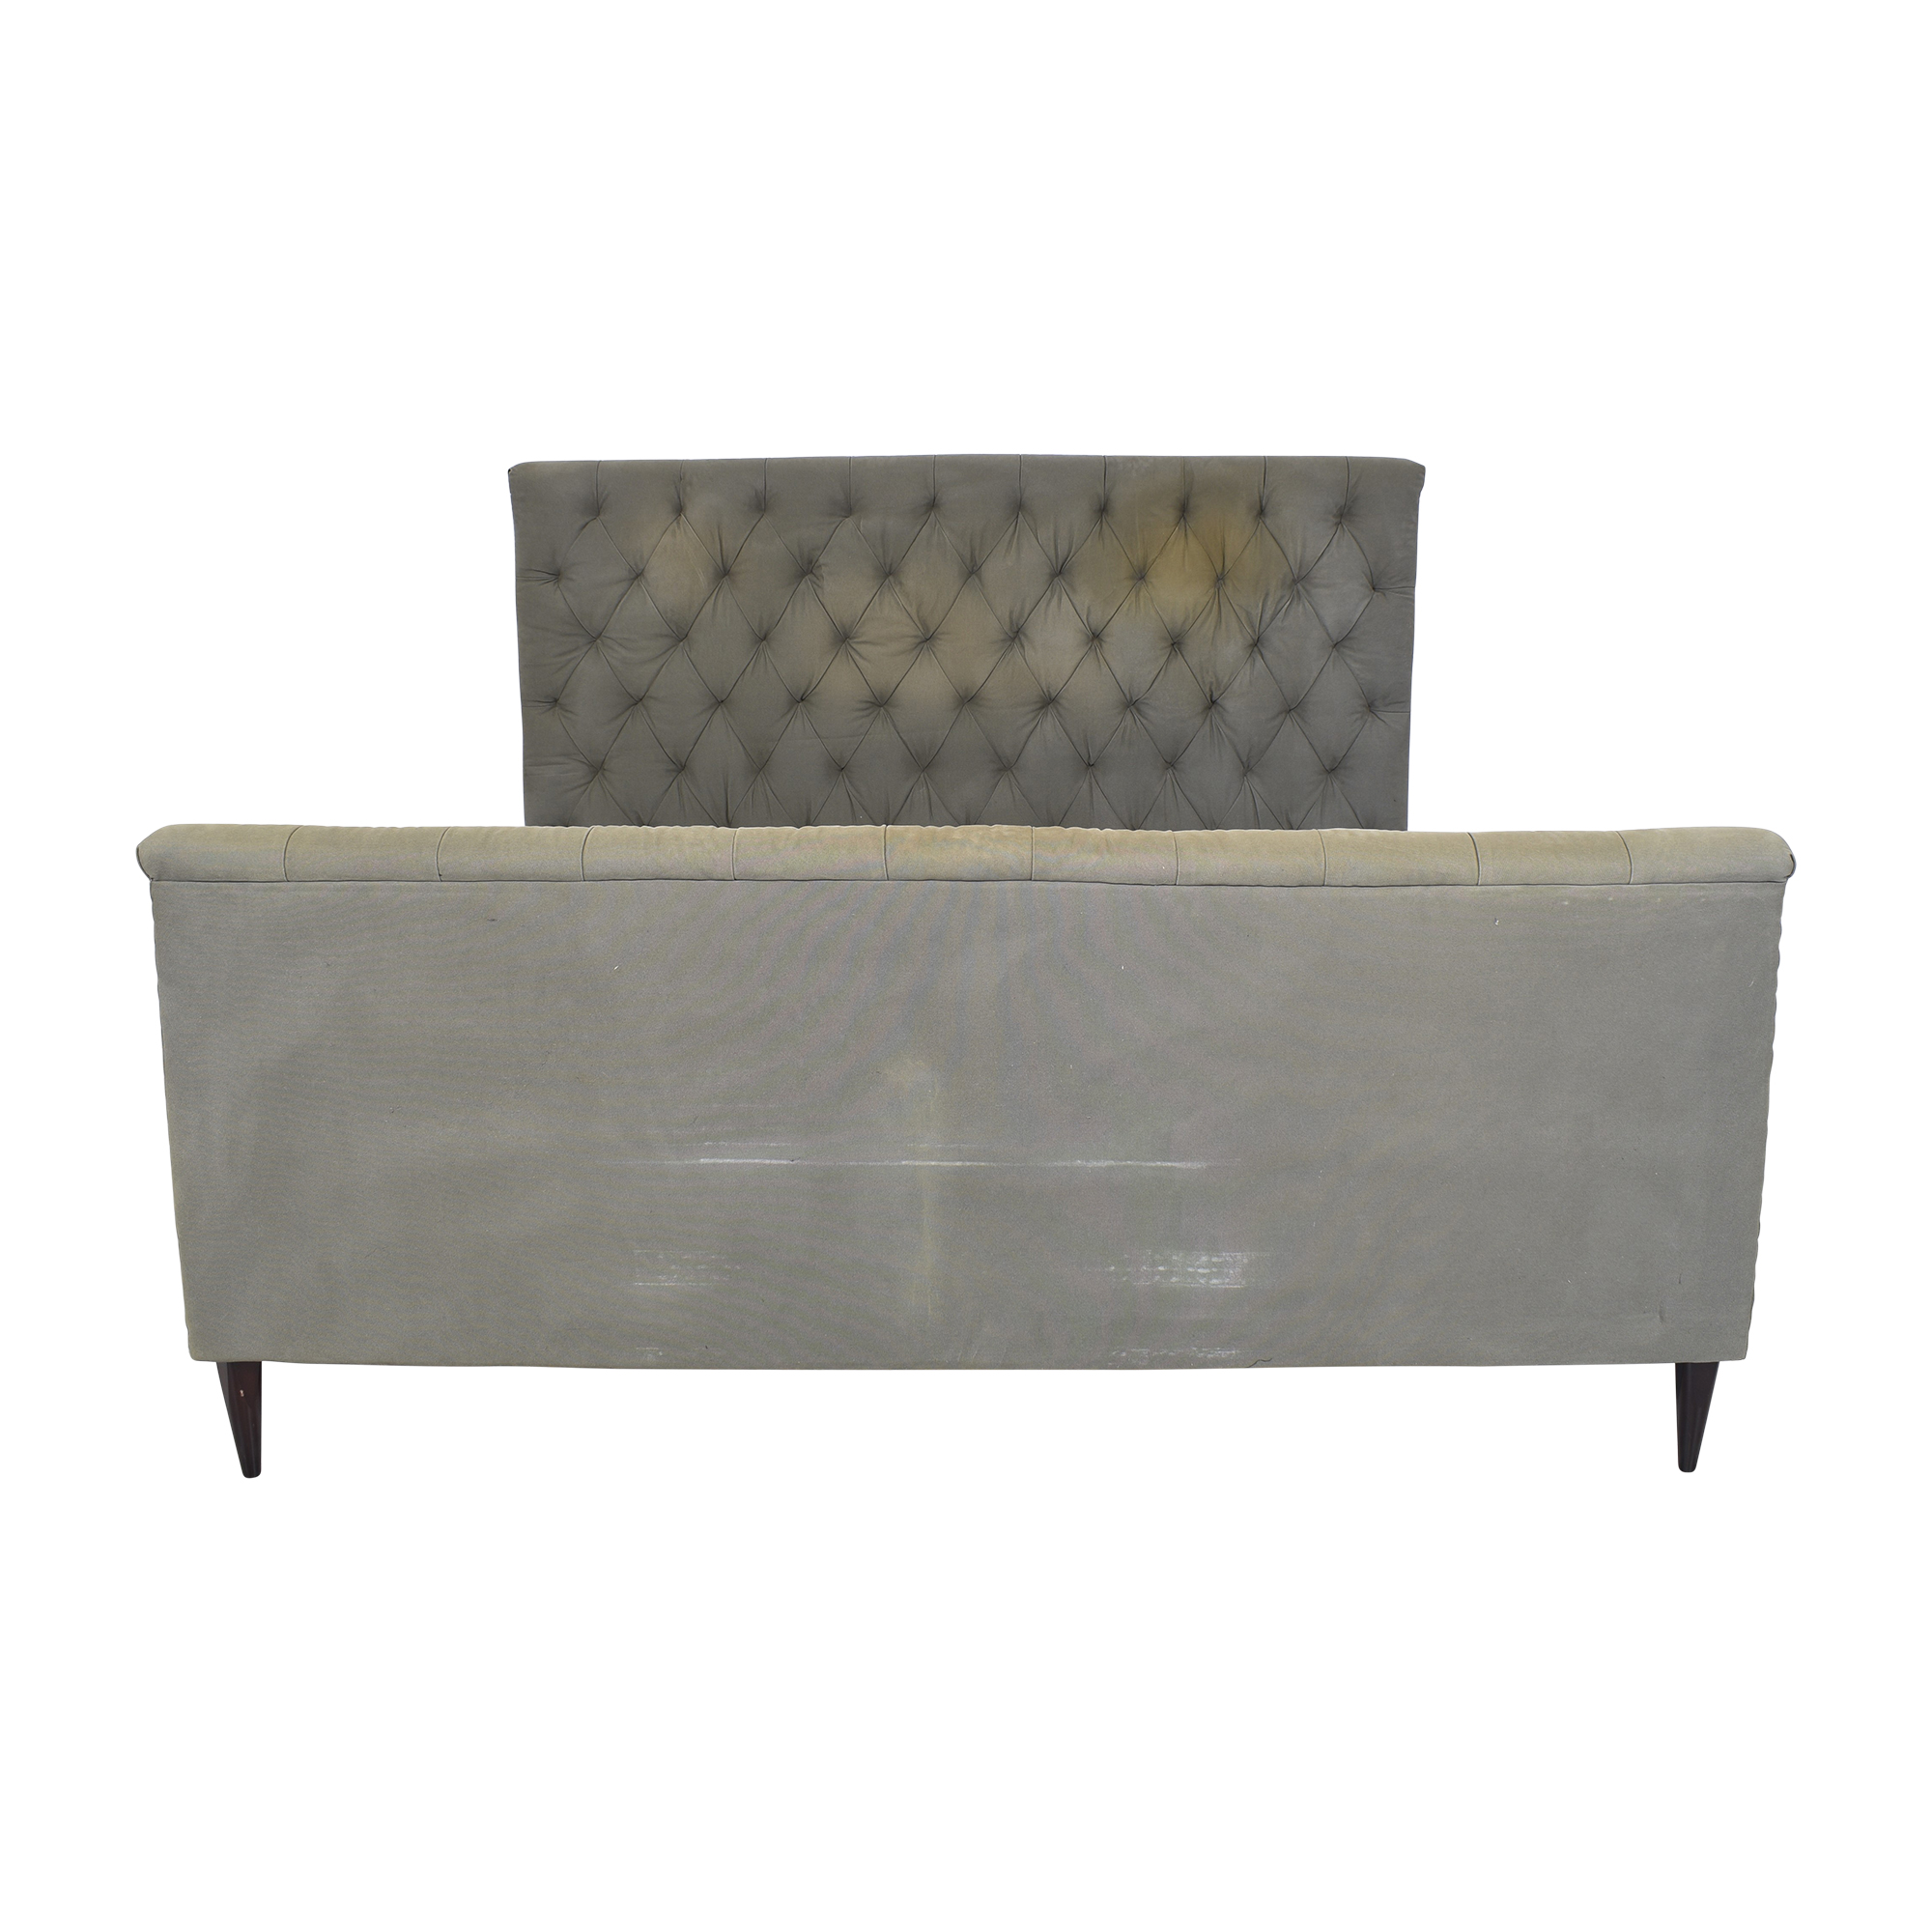 Restoration Hardware Restoration Hardware Chesterfield King Bed dark gray